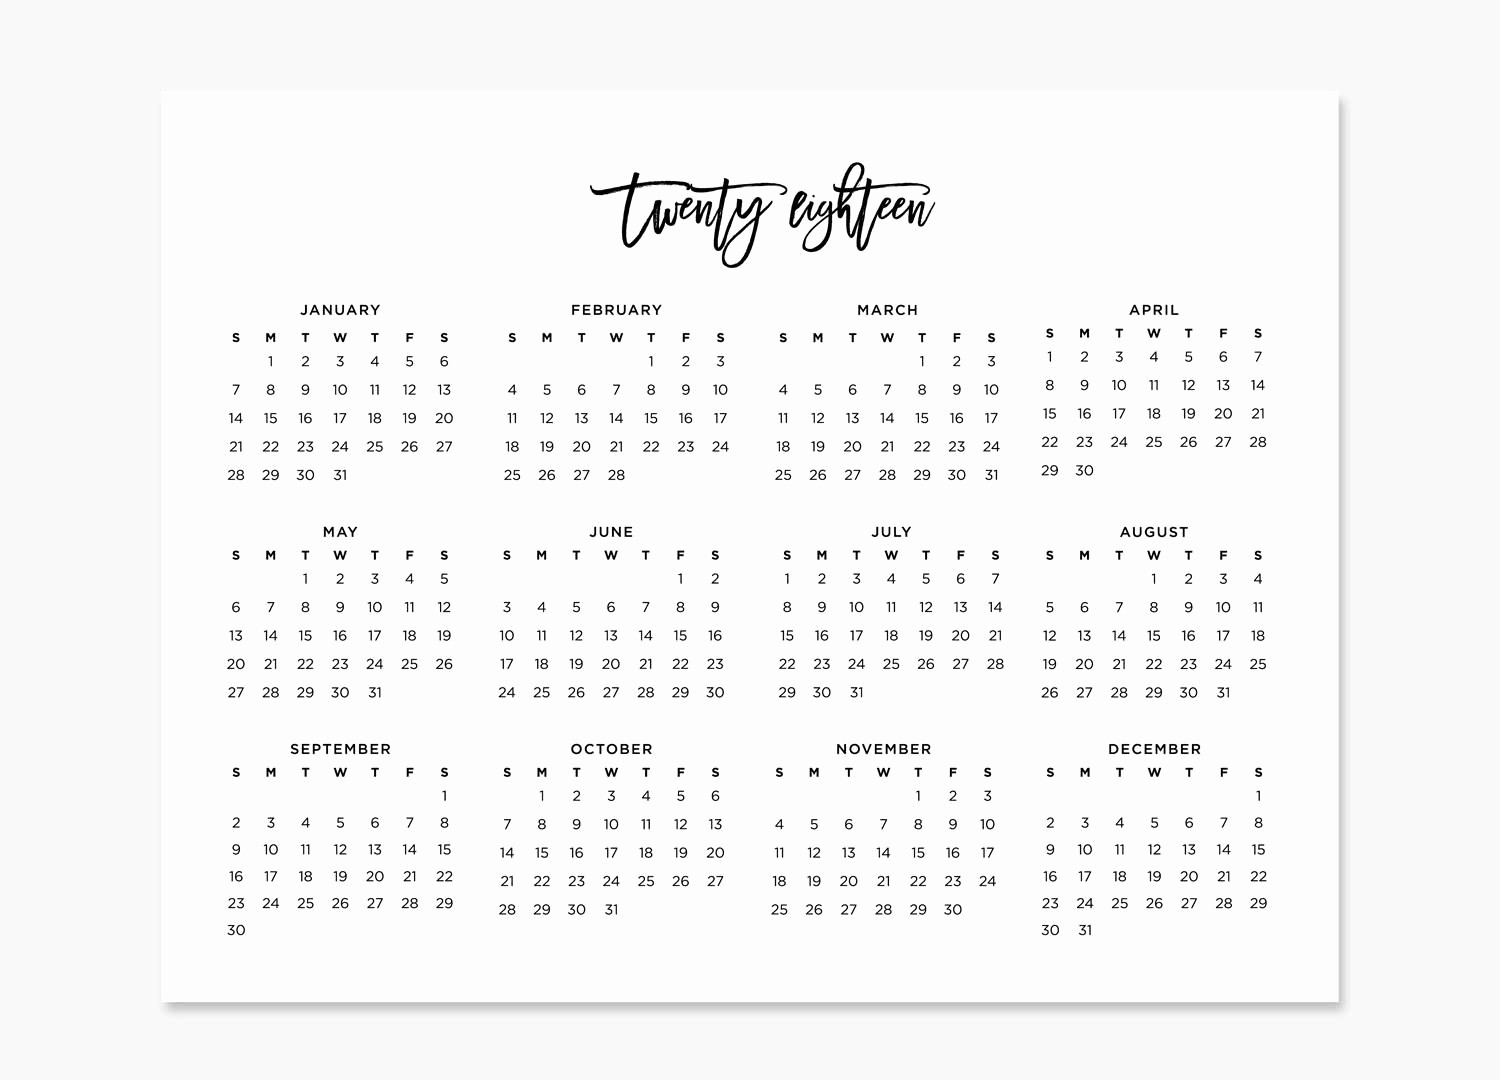 At A Glance 2018 Calendar New 2018 Year at A Glance Calendar Free Printable – Template